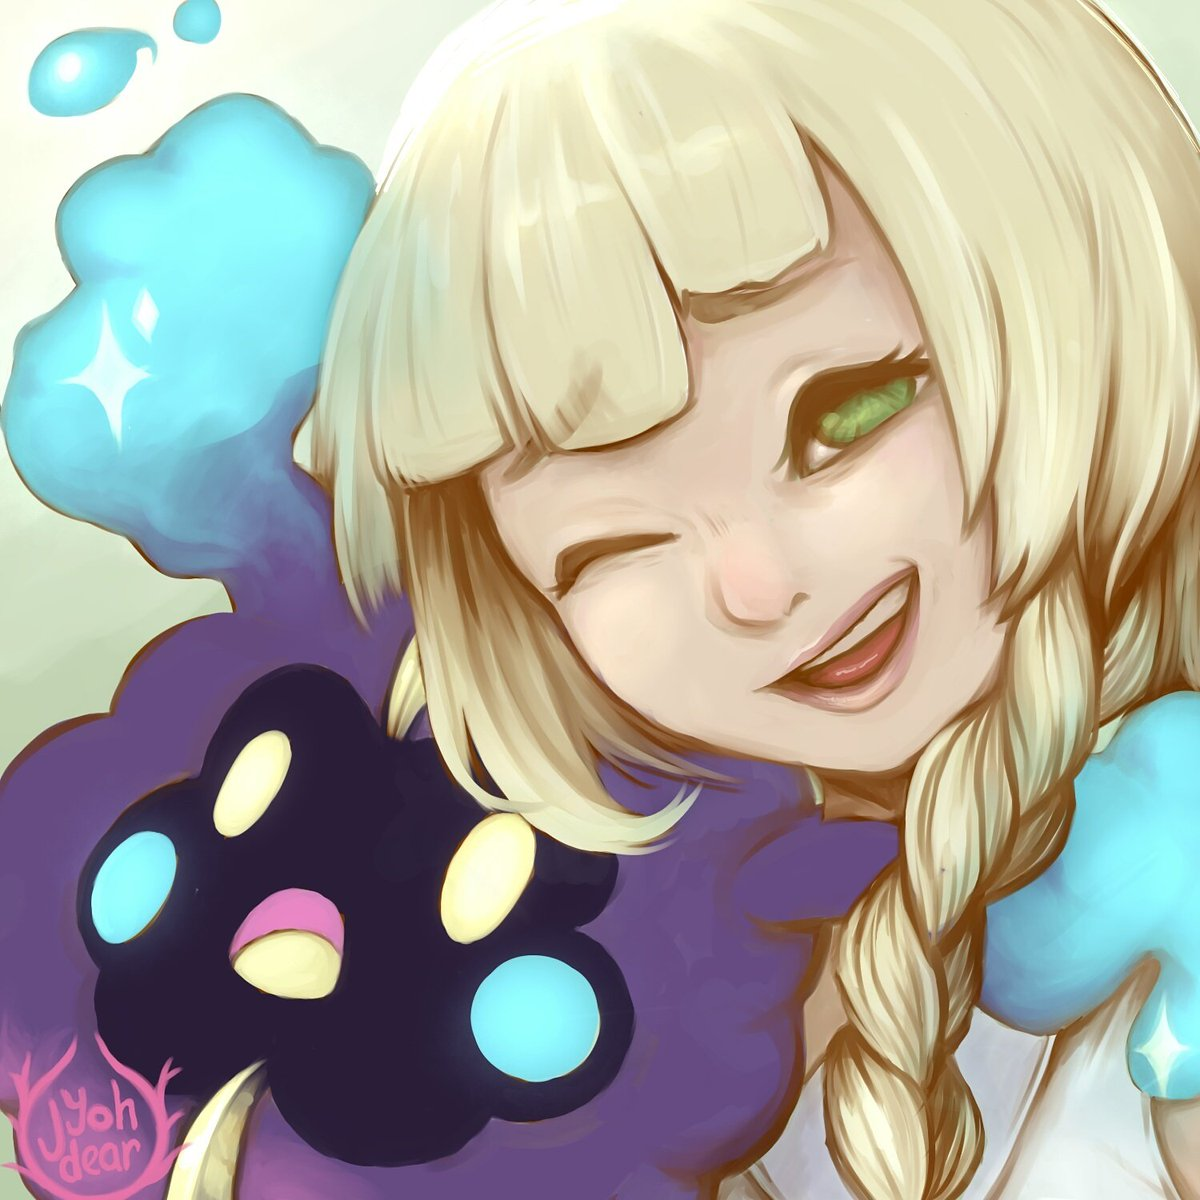 Lillie from #pokemon with #cosmog for #cutiesaturday #digitalart #artistsontwitter #sunandmoon #painting<br>http://pic.twitter.com/r8Xbq3yfKN